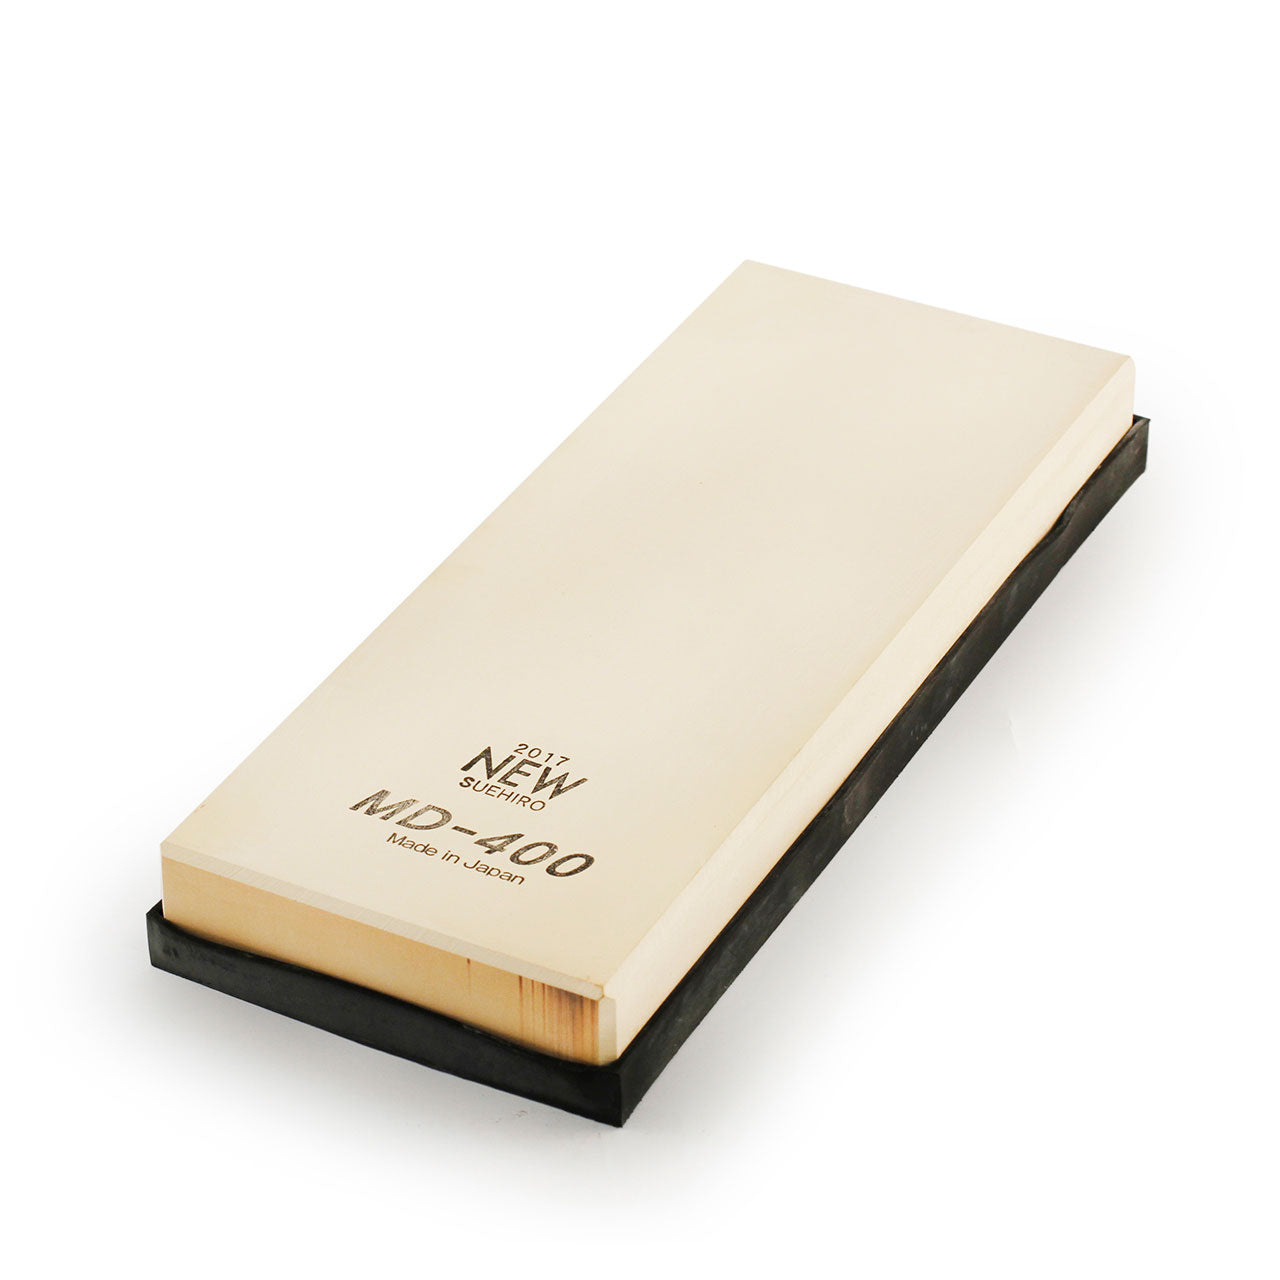 Suehiro Debado MD #4000 Knife Sharpening Stone